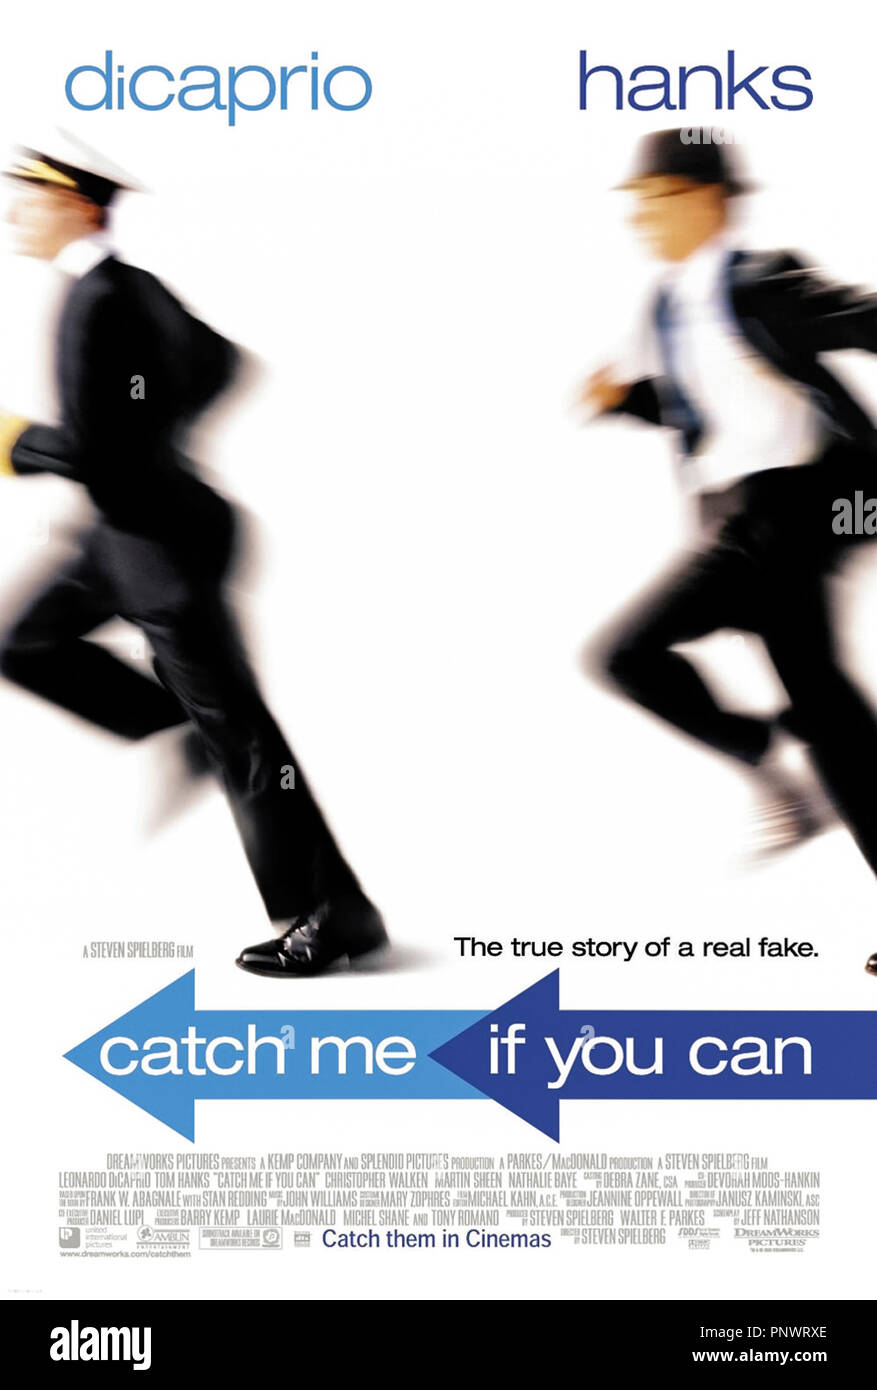 Catch Me If You Can (2002) directed by Steven Spielberg and starring Leonardo DiCaprio, Tom Hanks, Christopher Walken and Martin Sheen. The true story of Frank Abagnale Jr. a confidence trickster and fraudster and how FBI agent Carl Hanratty captured him. - Stock Image